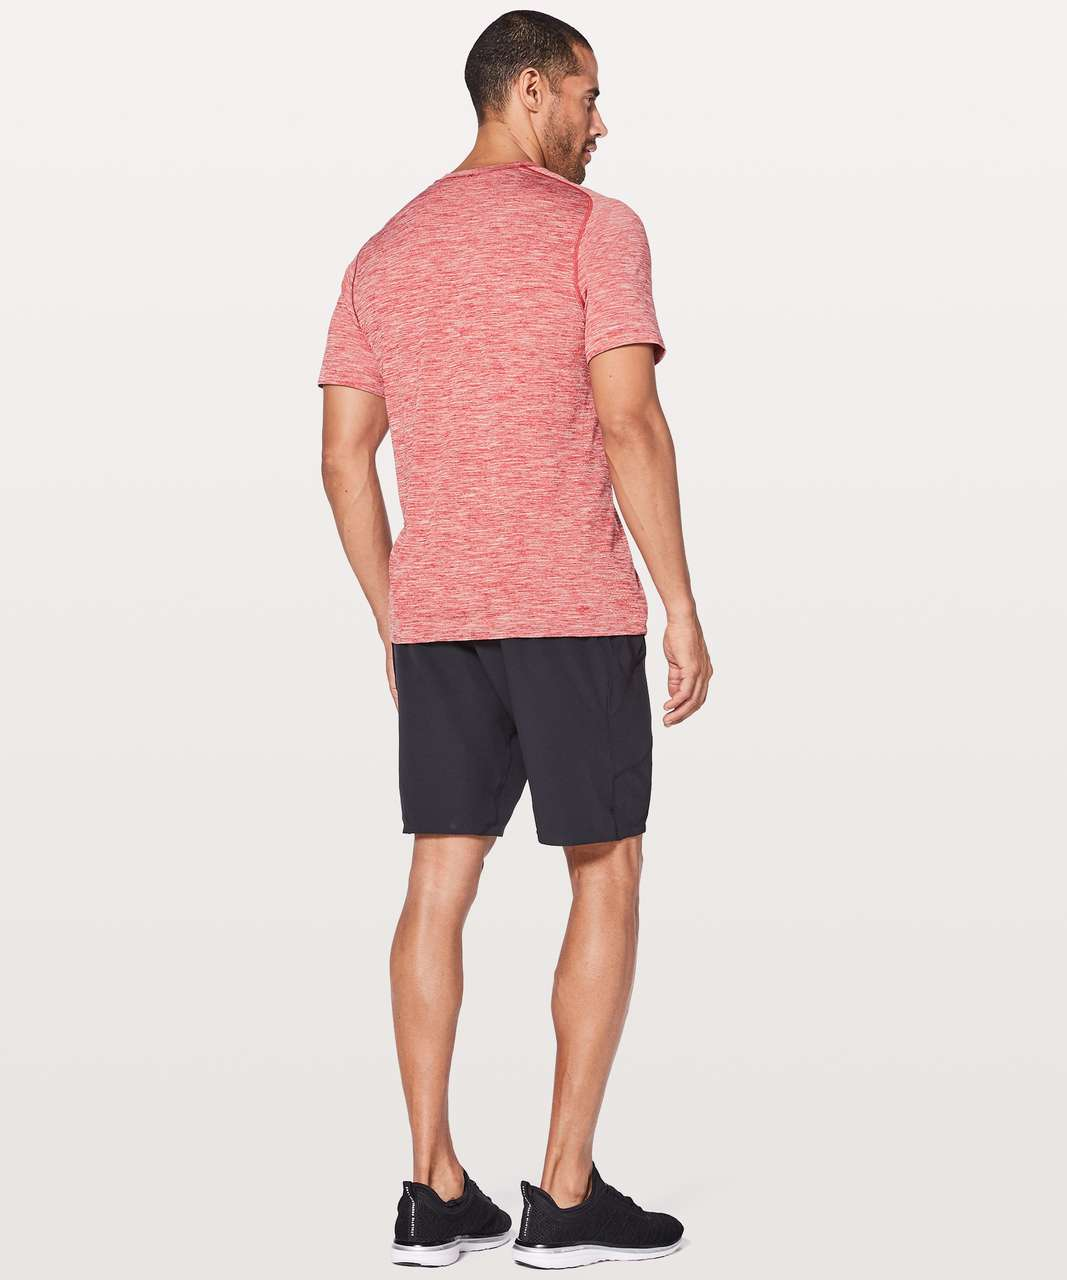 Lululemon Metal Vent Tech Surge Short Sleeve - Game Day Red / White